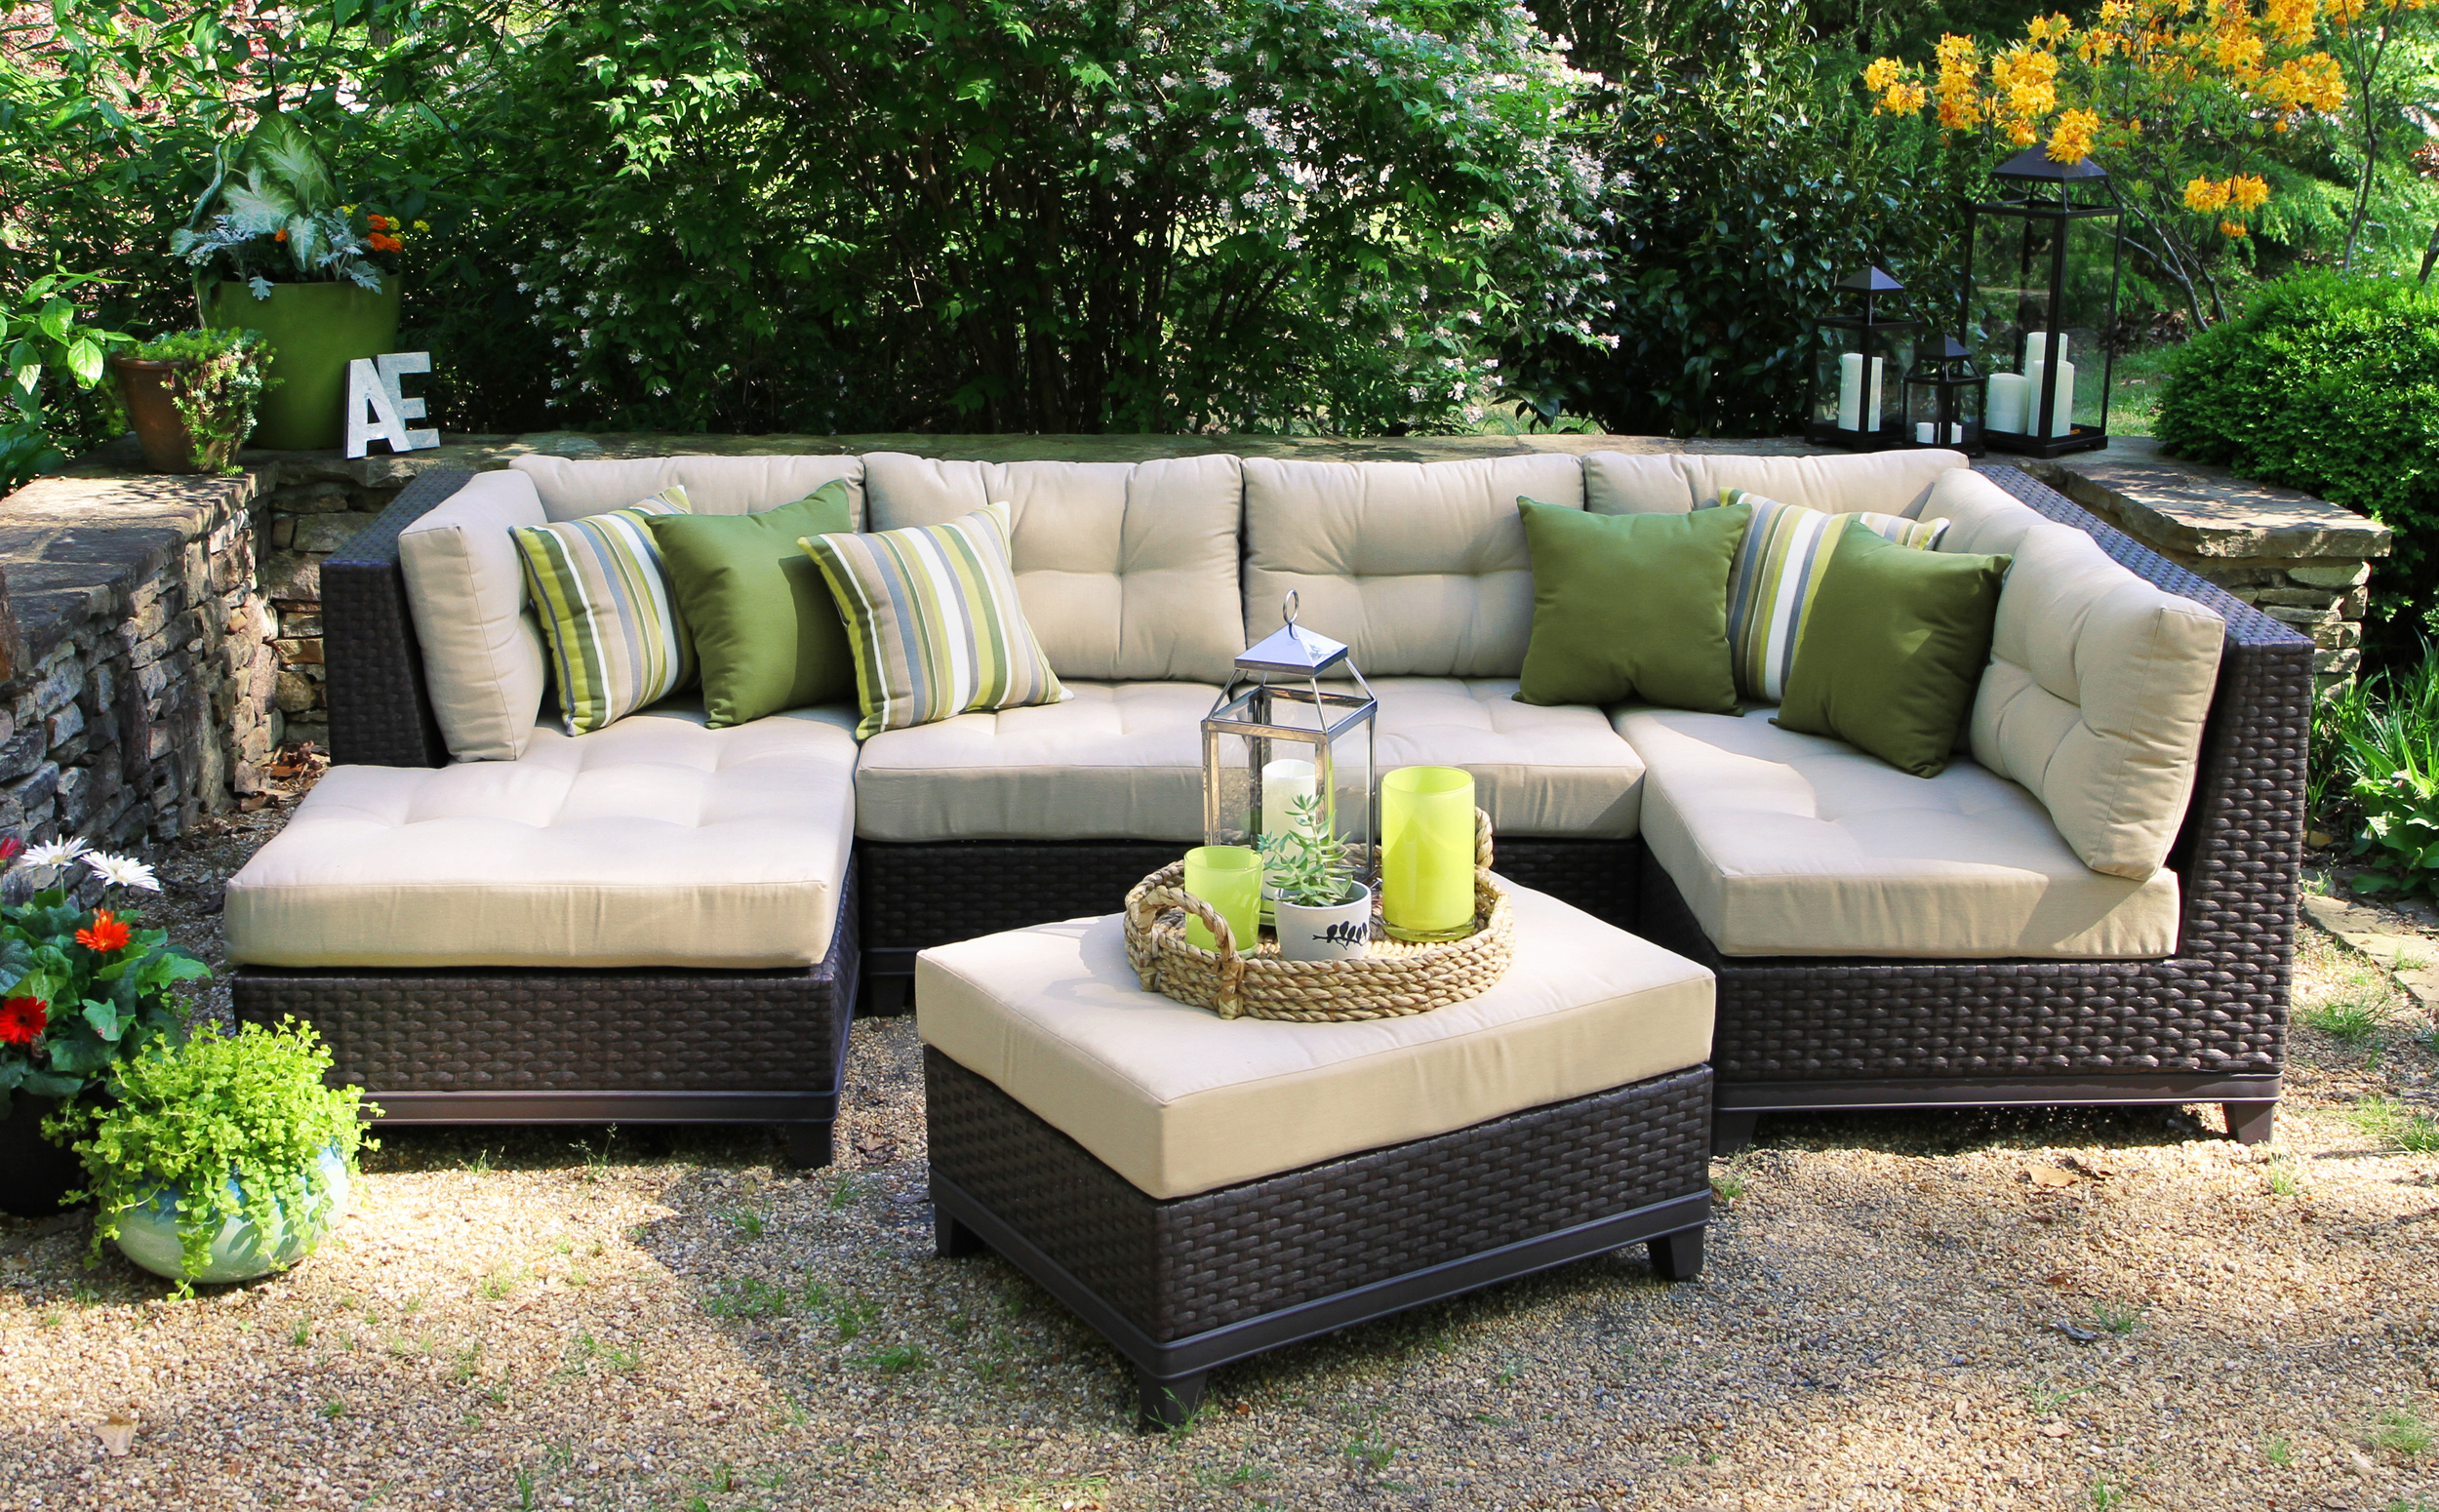 Hillborough Side Detail Copy Of Hillborough 4 Piece Outdoor Sectional |  AE Outdoor | Not Your Grandmau0027s Patio Furniture ...